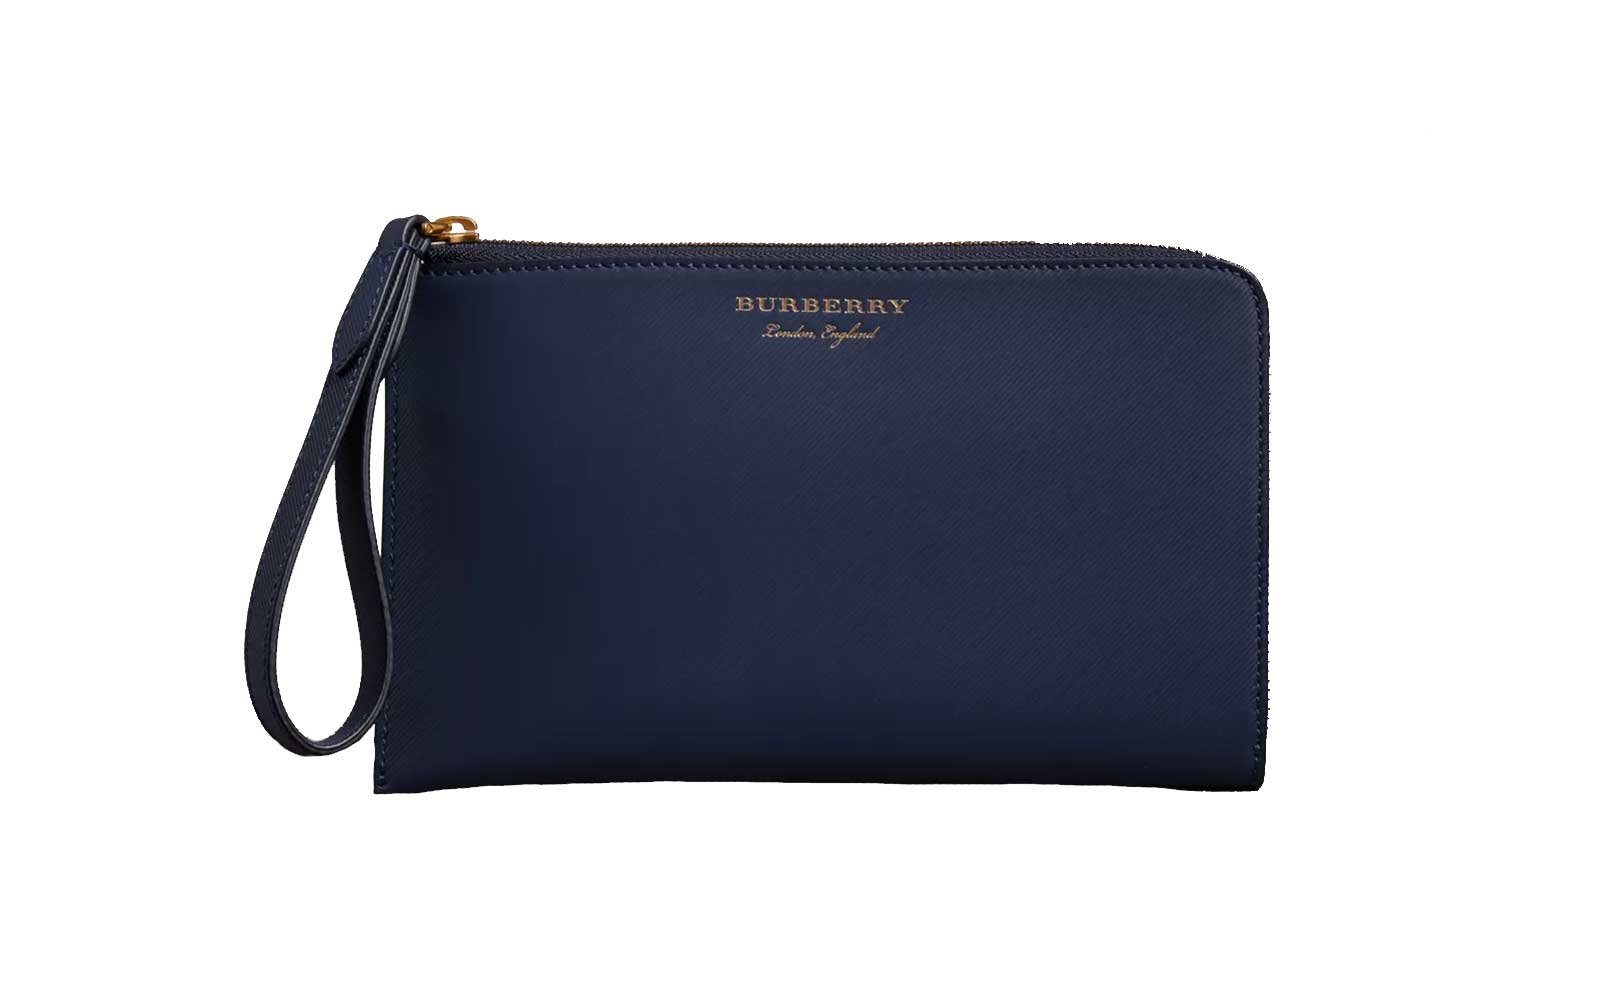 burberry mens travel wallet